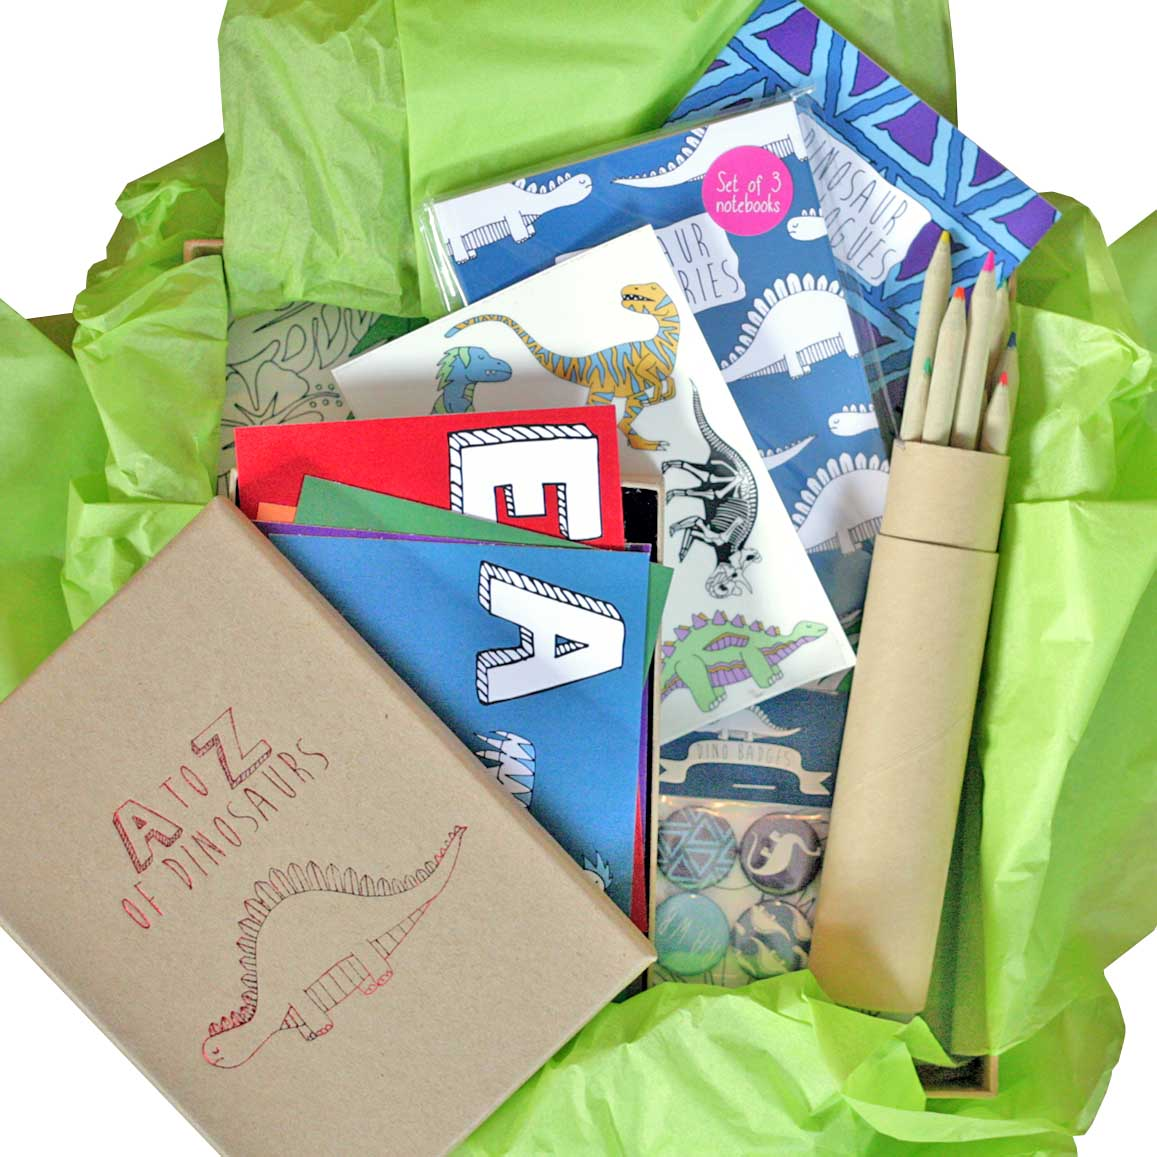 Dinosaur gift box featuring a colouring book, badges and transfer tattoos